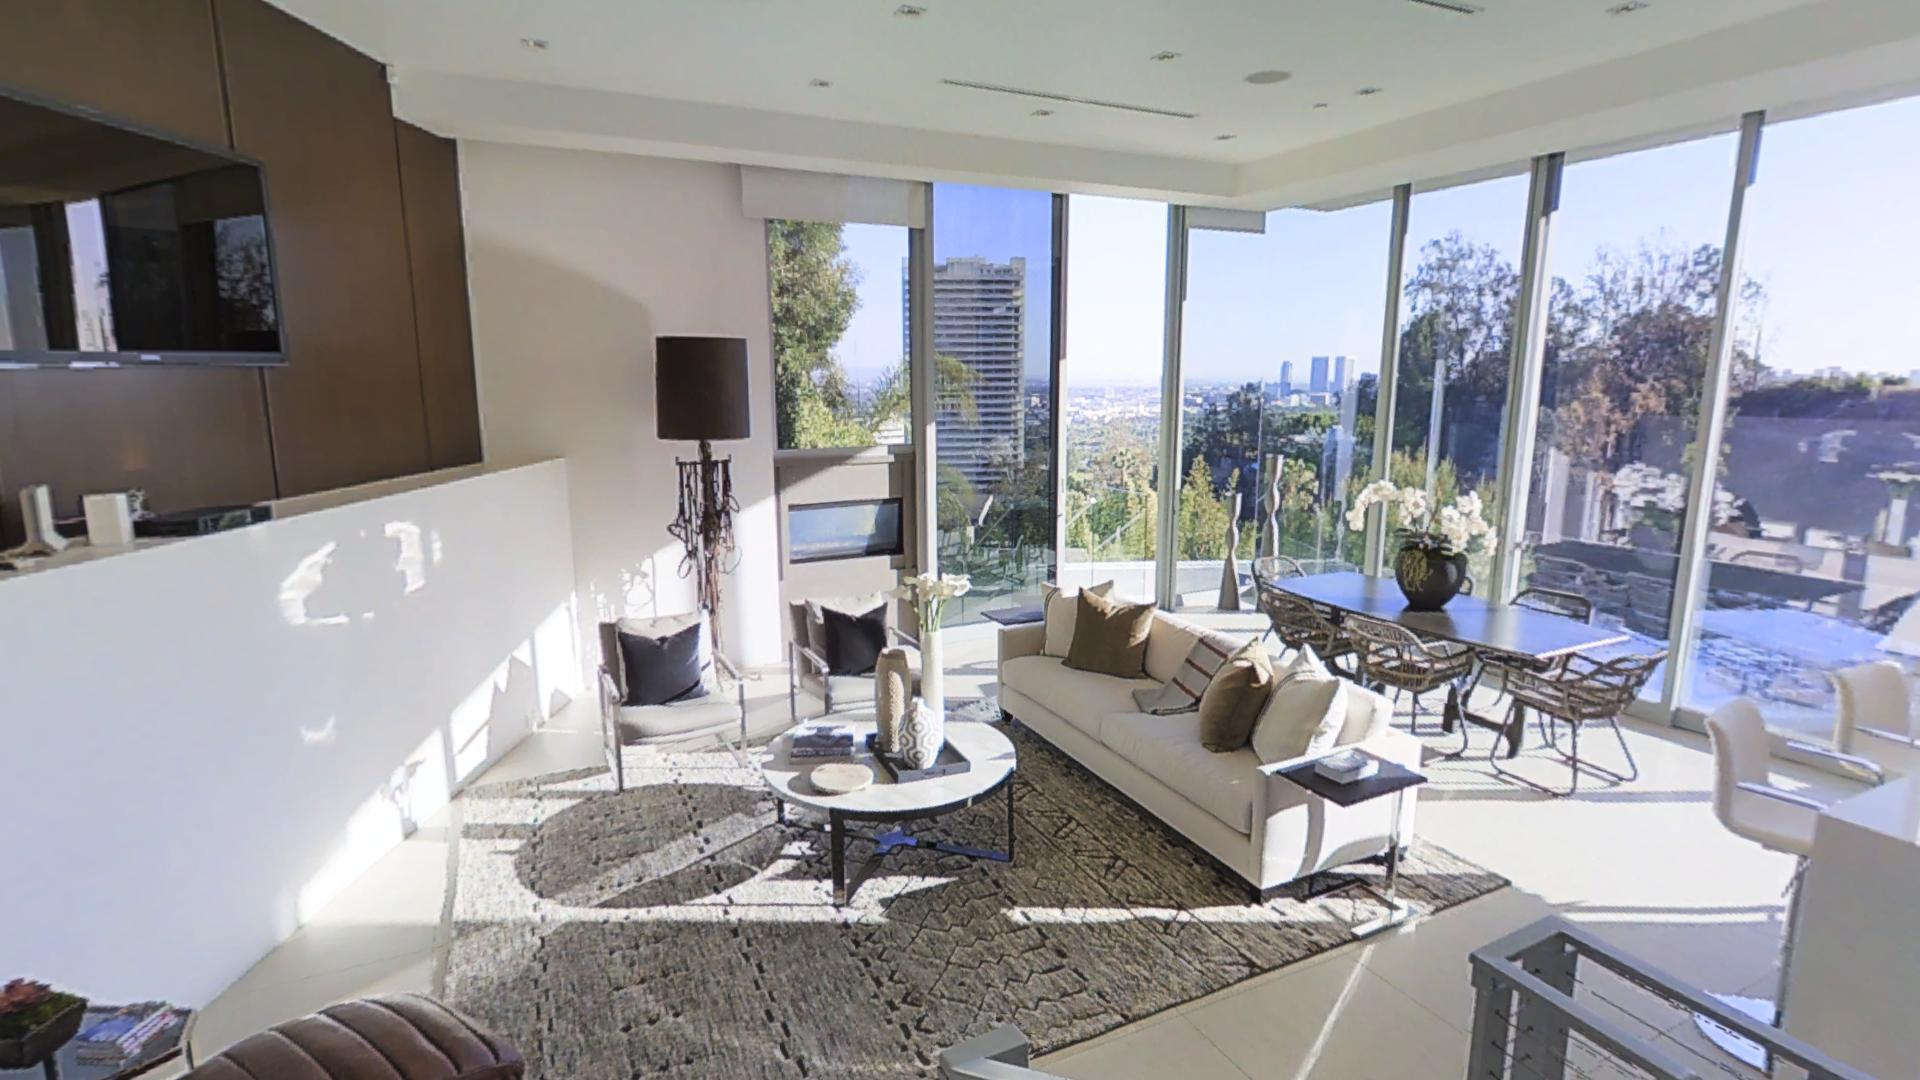 9274 Sierra Mar Dr,                           LOS ANGELES, CA 90069